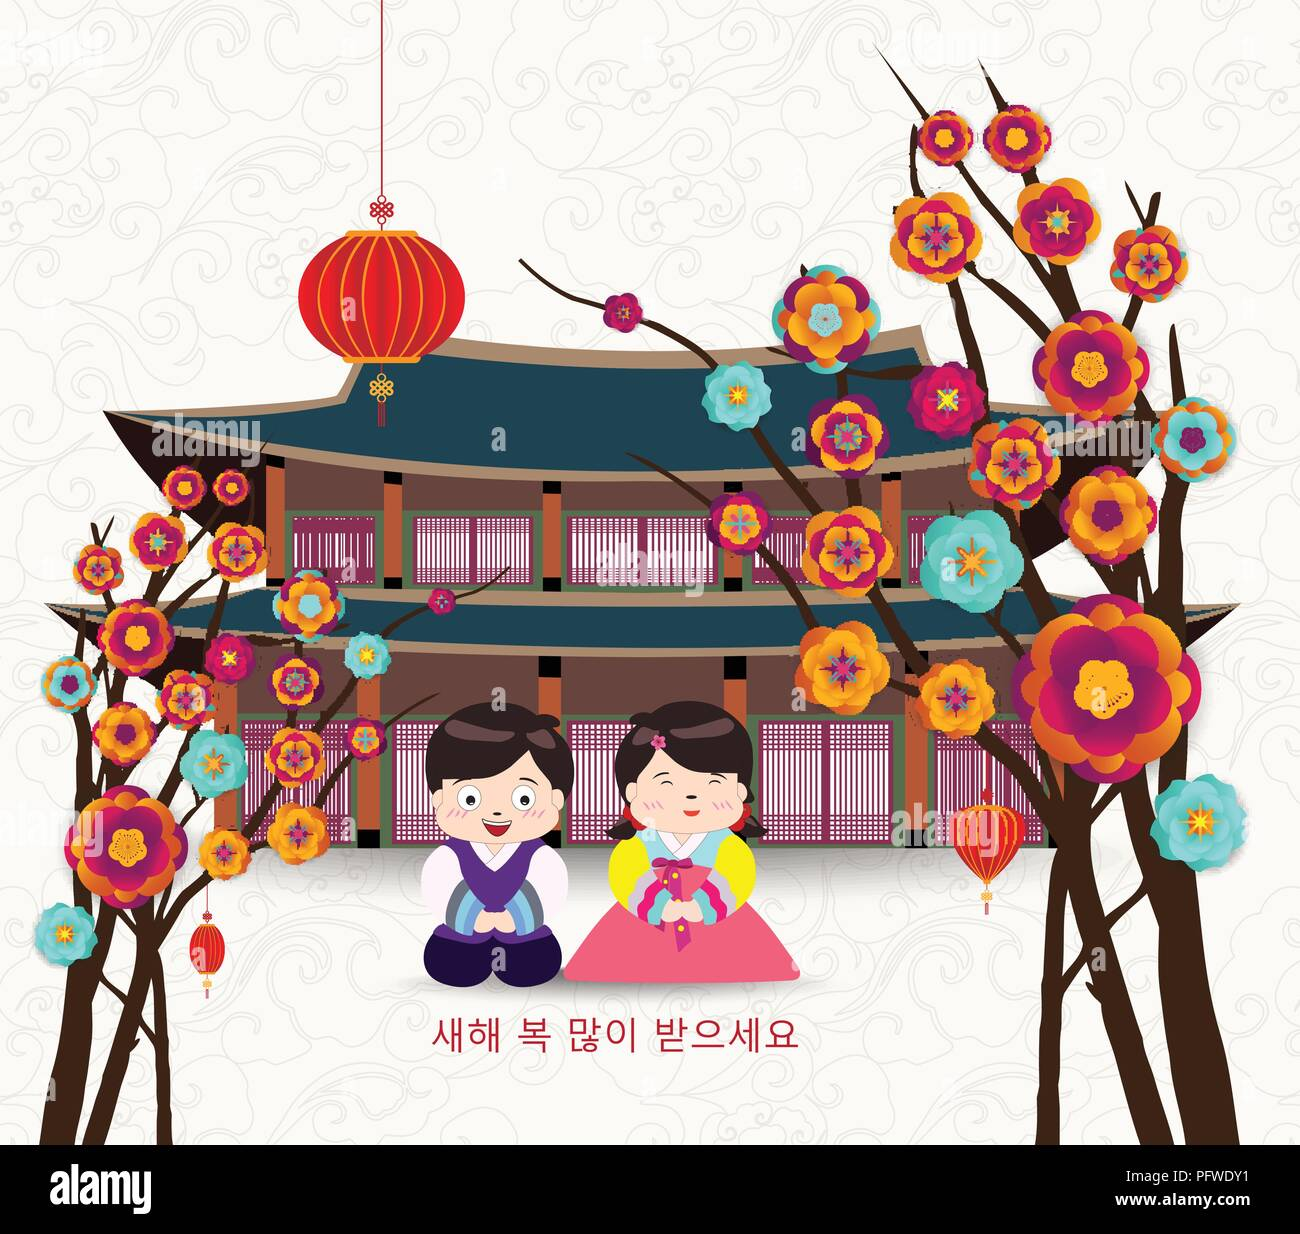 korea new year korean characters mean happy new year childrens greet